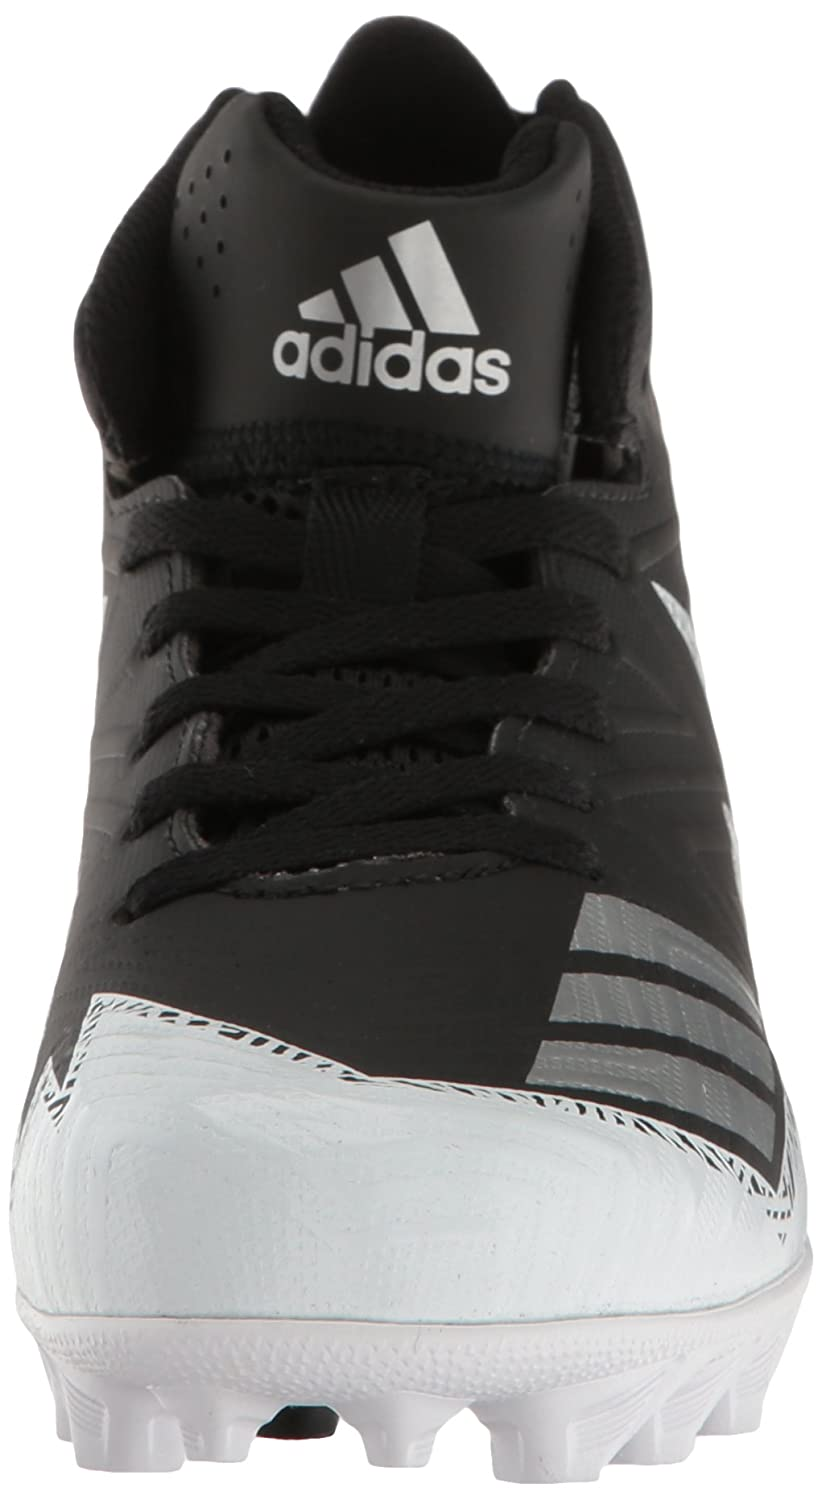 Hammer Crusher black adidas shoes